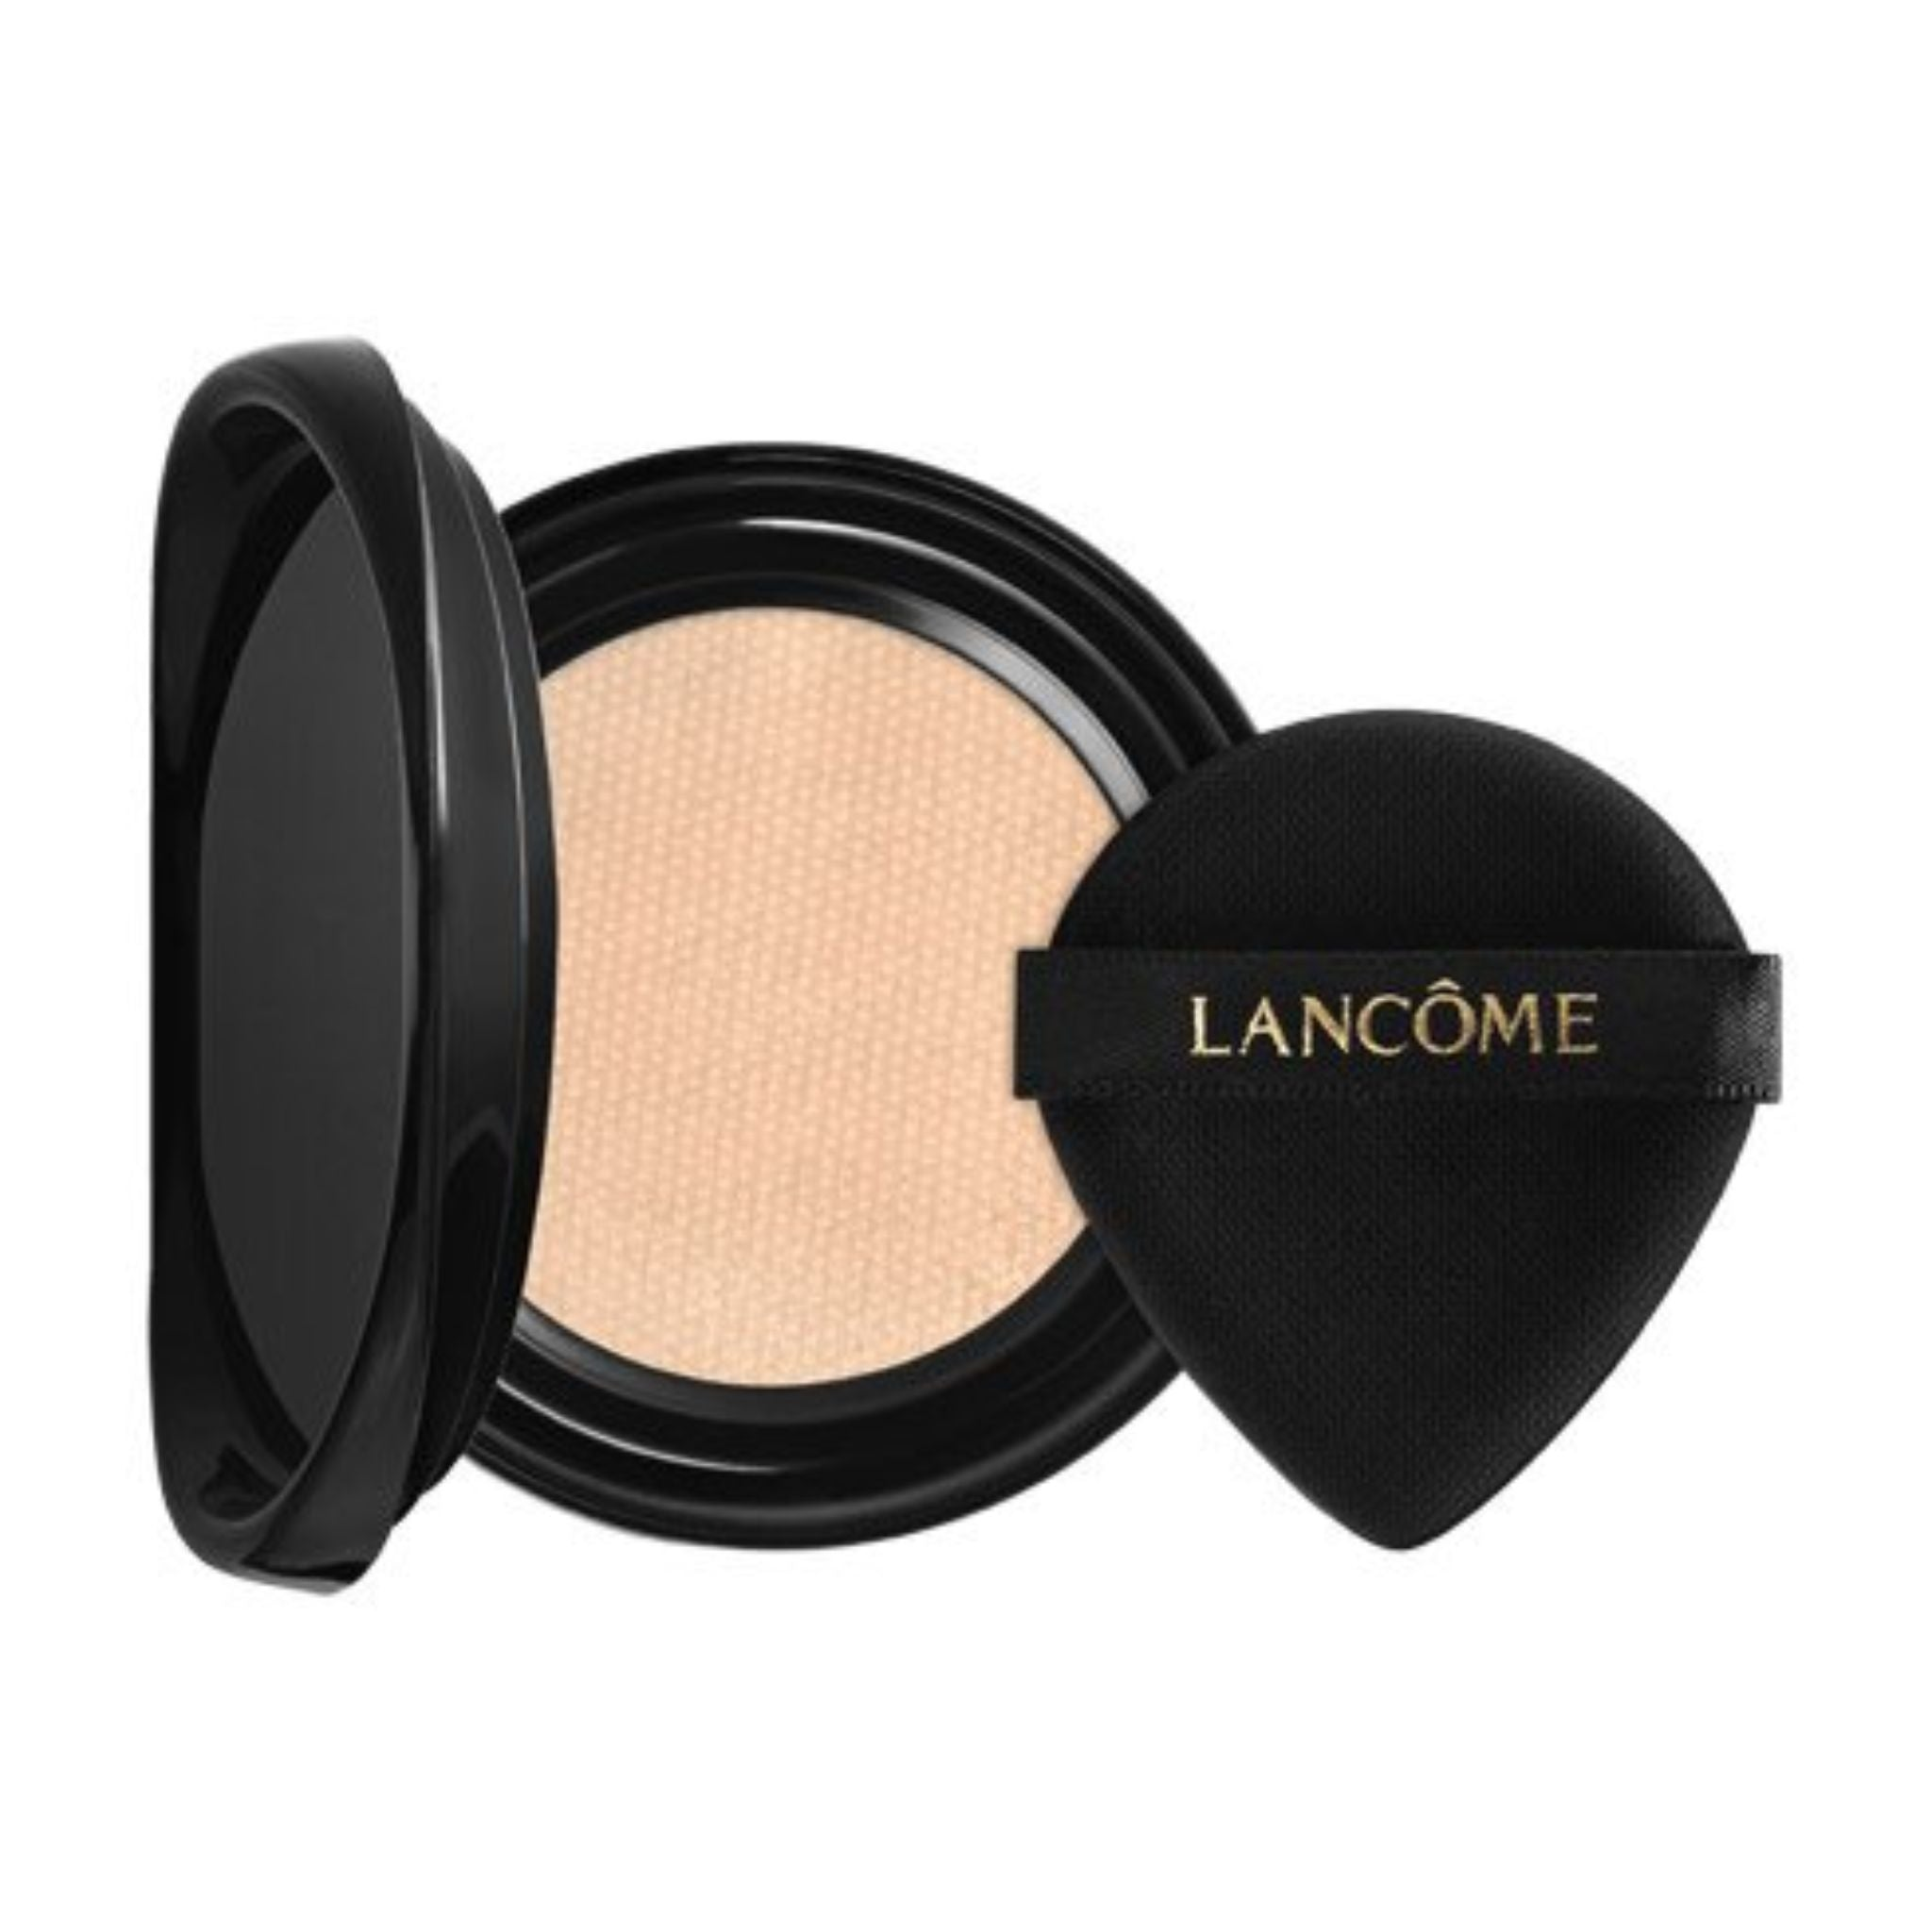 Lancome Absolue Cushion Refill Shade 130